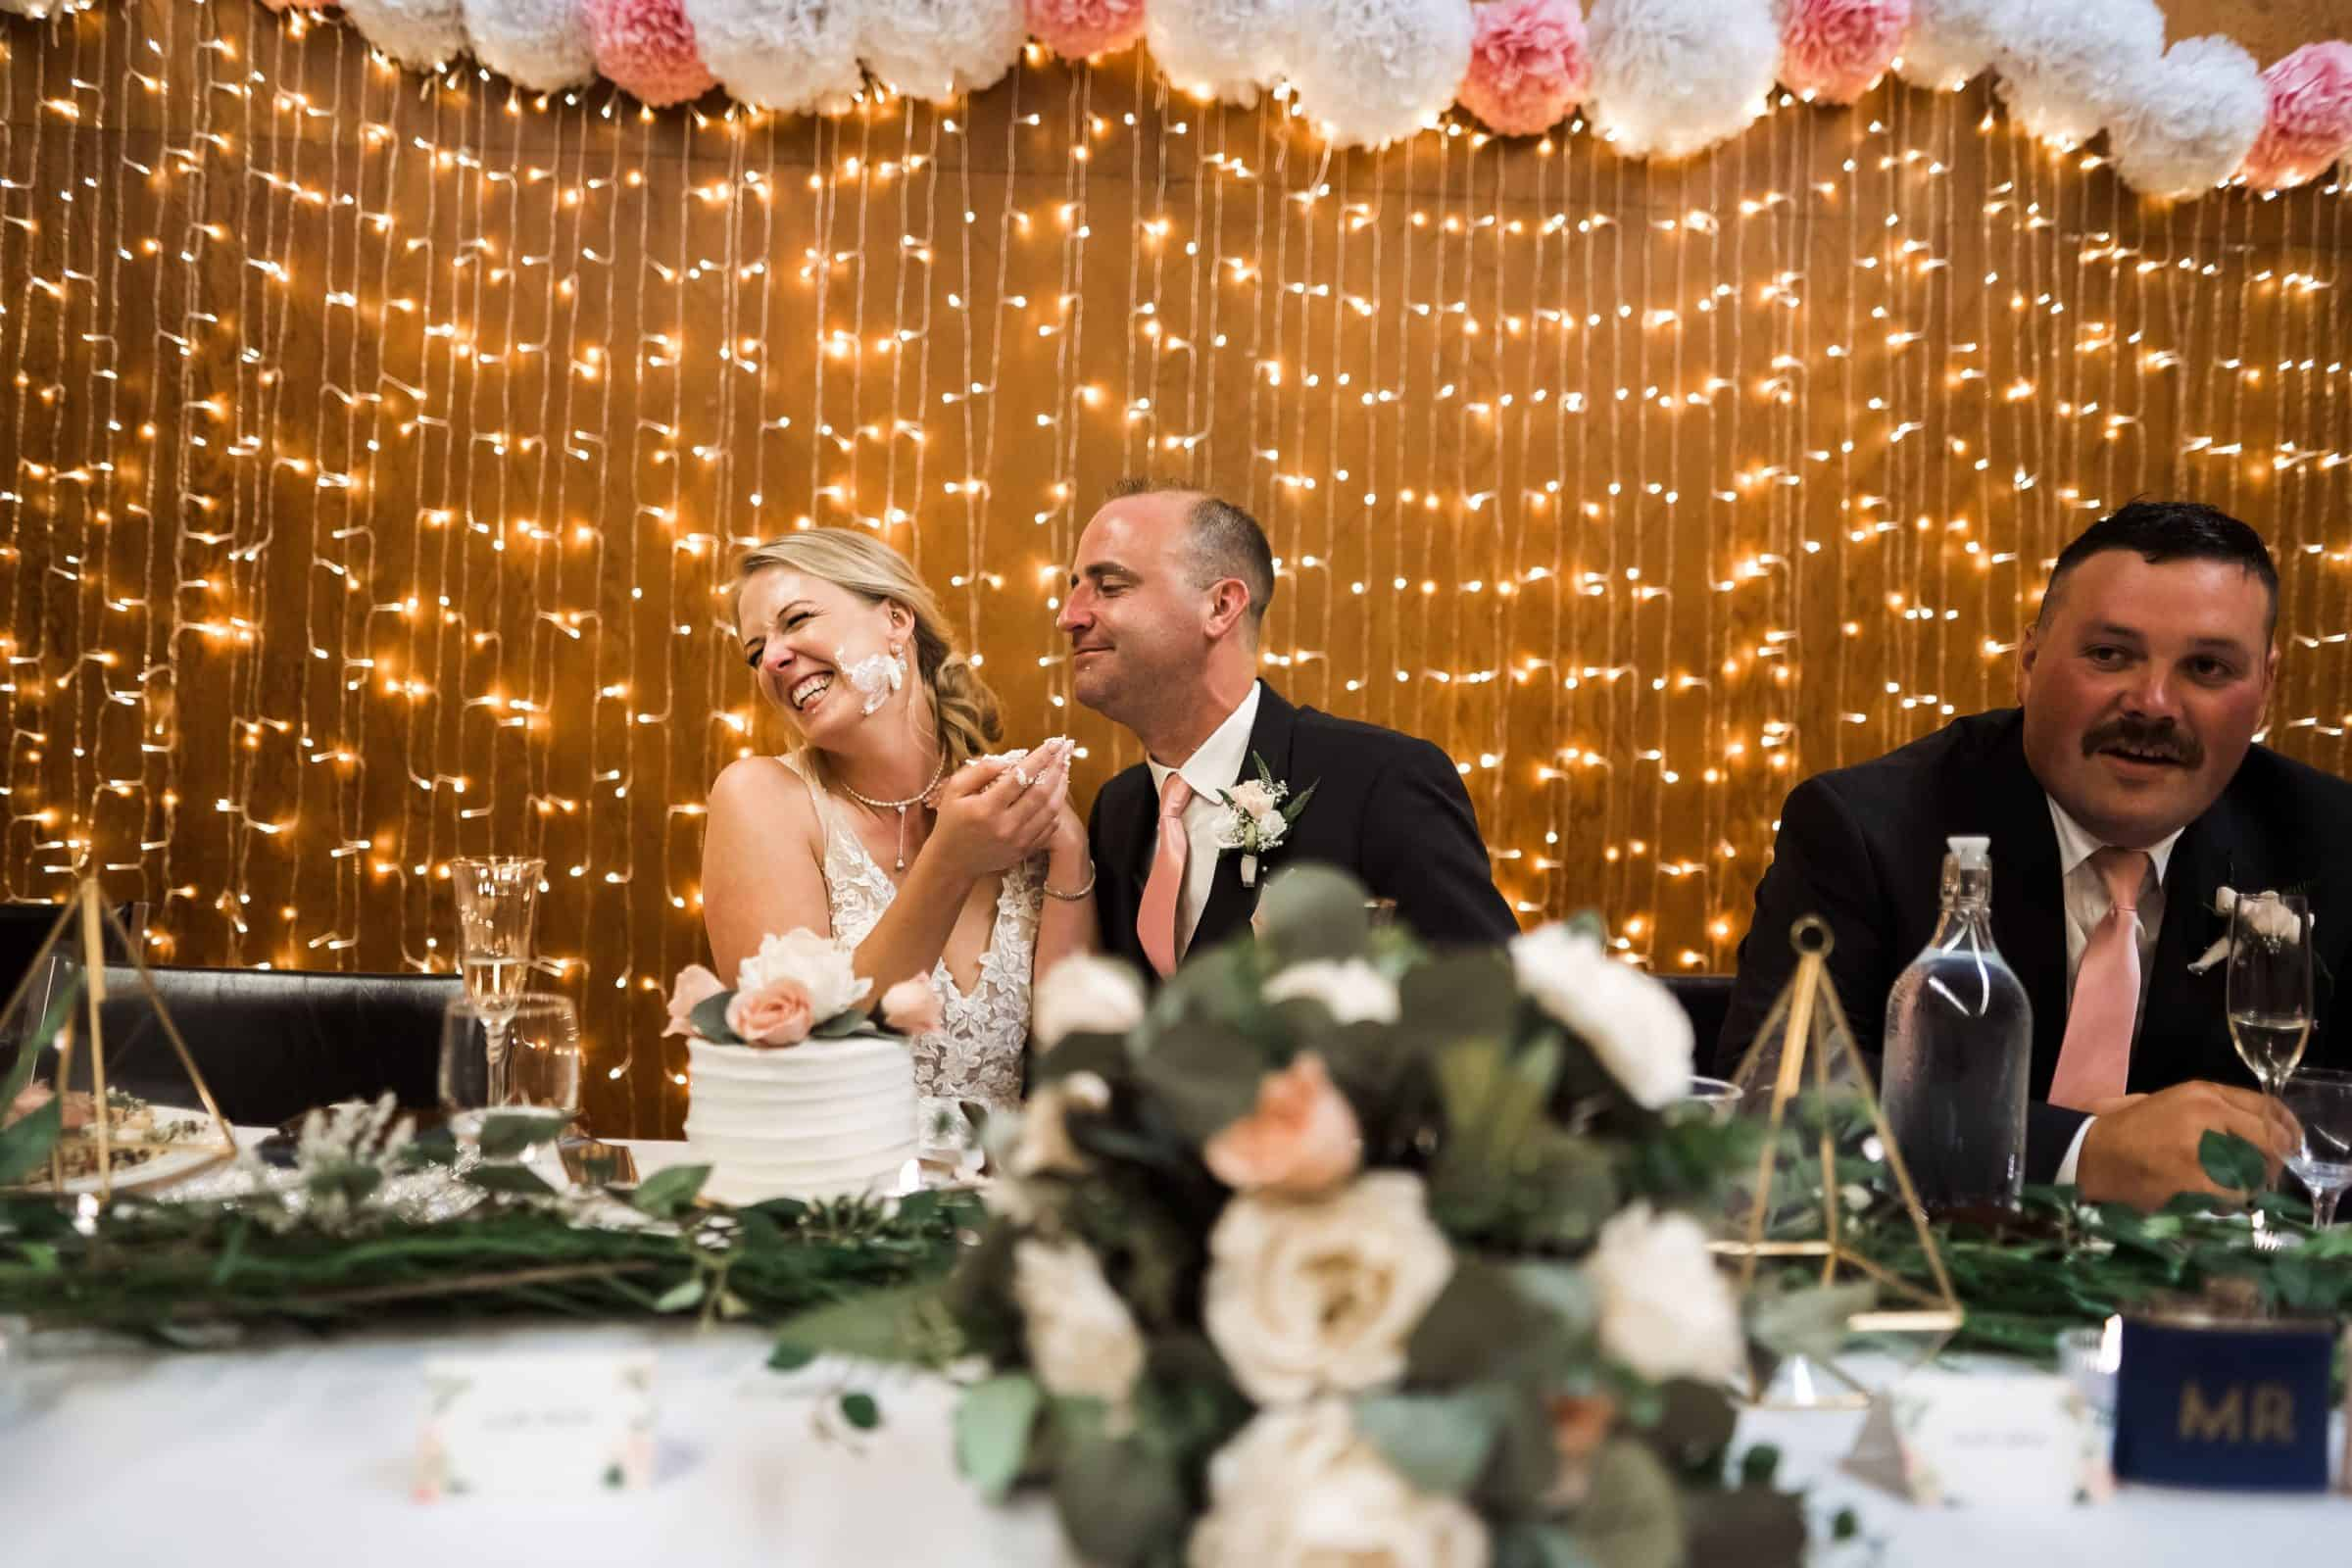 bride laughing after groom puts cake on her face